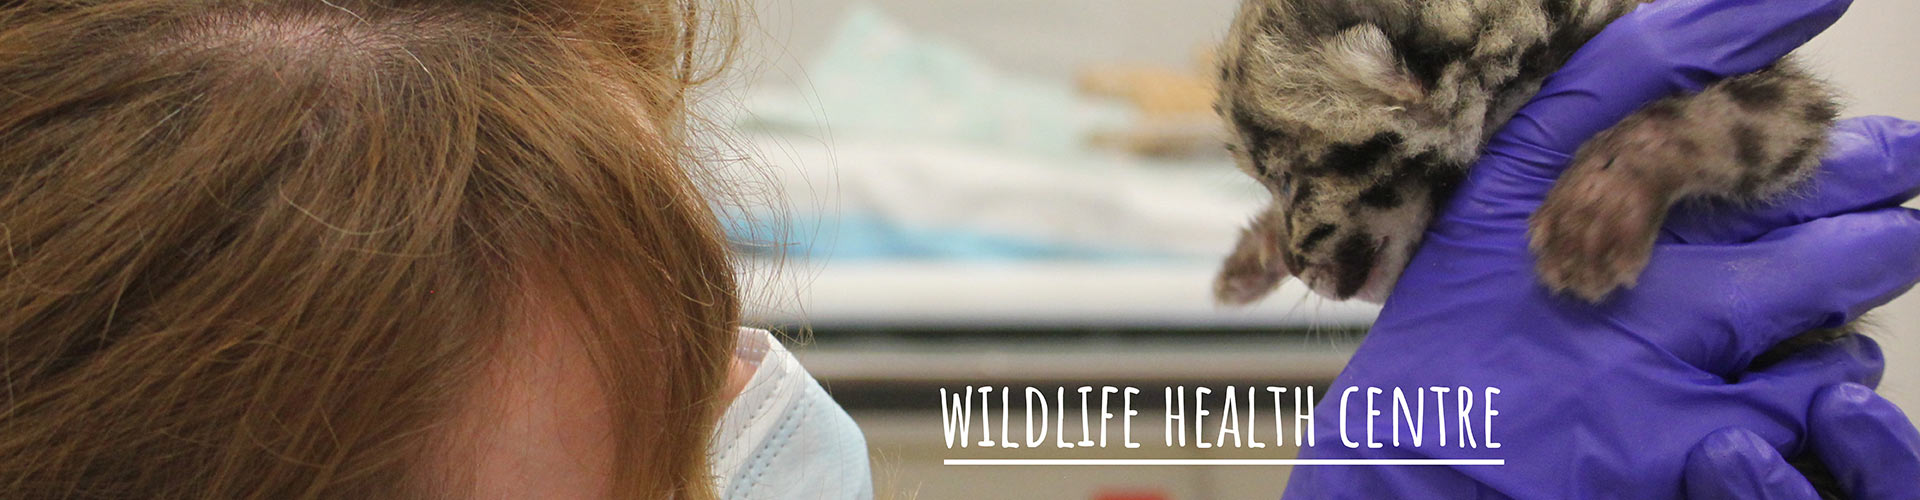 Wild Life Health Centre Science & Research Partners